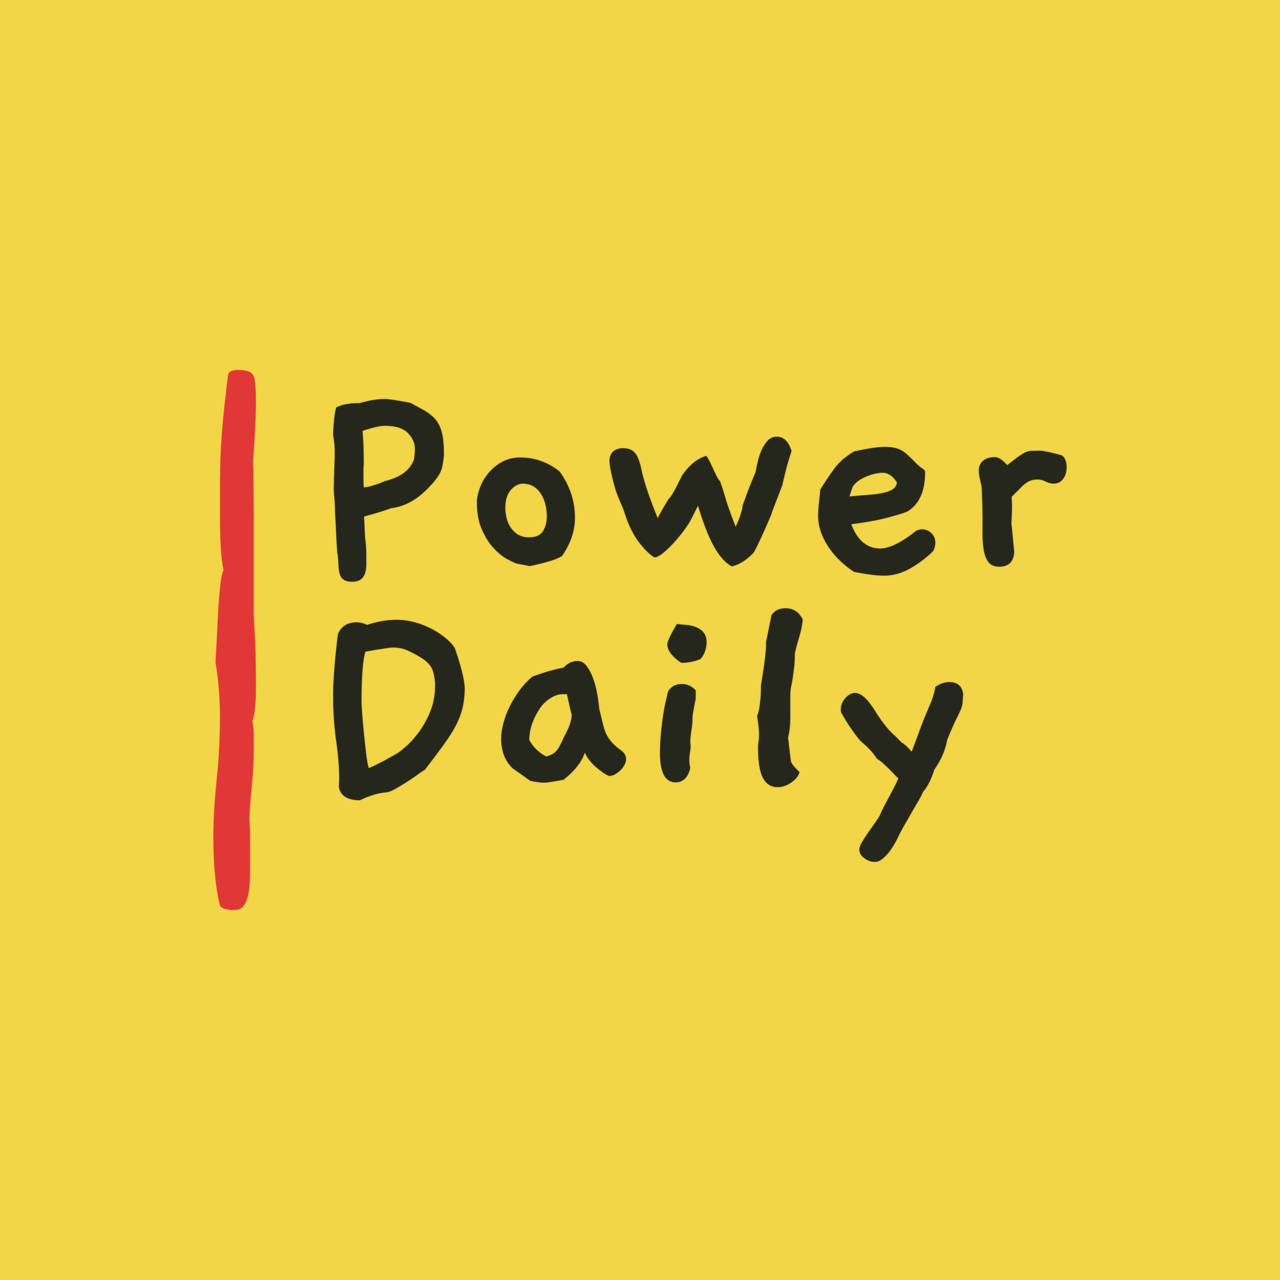 Power Daily